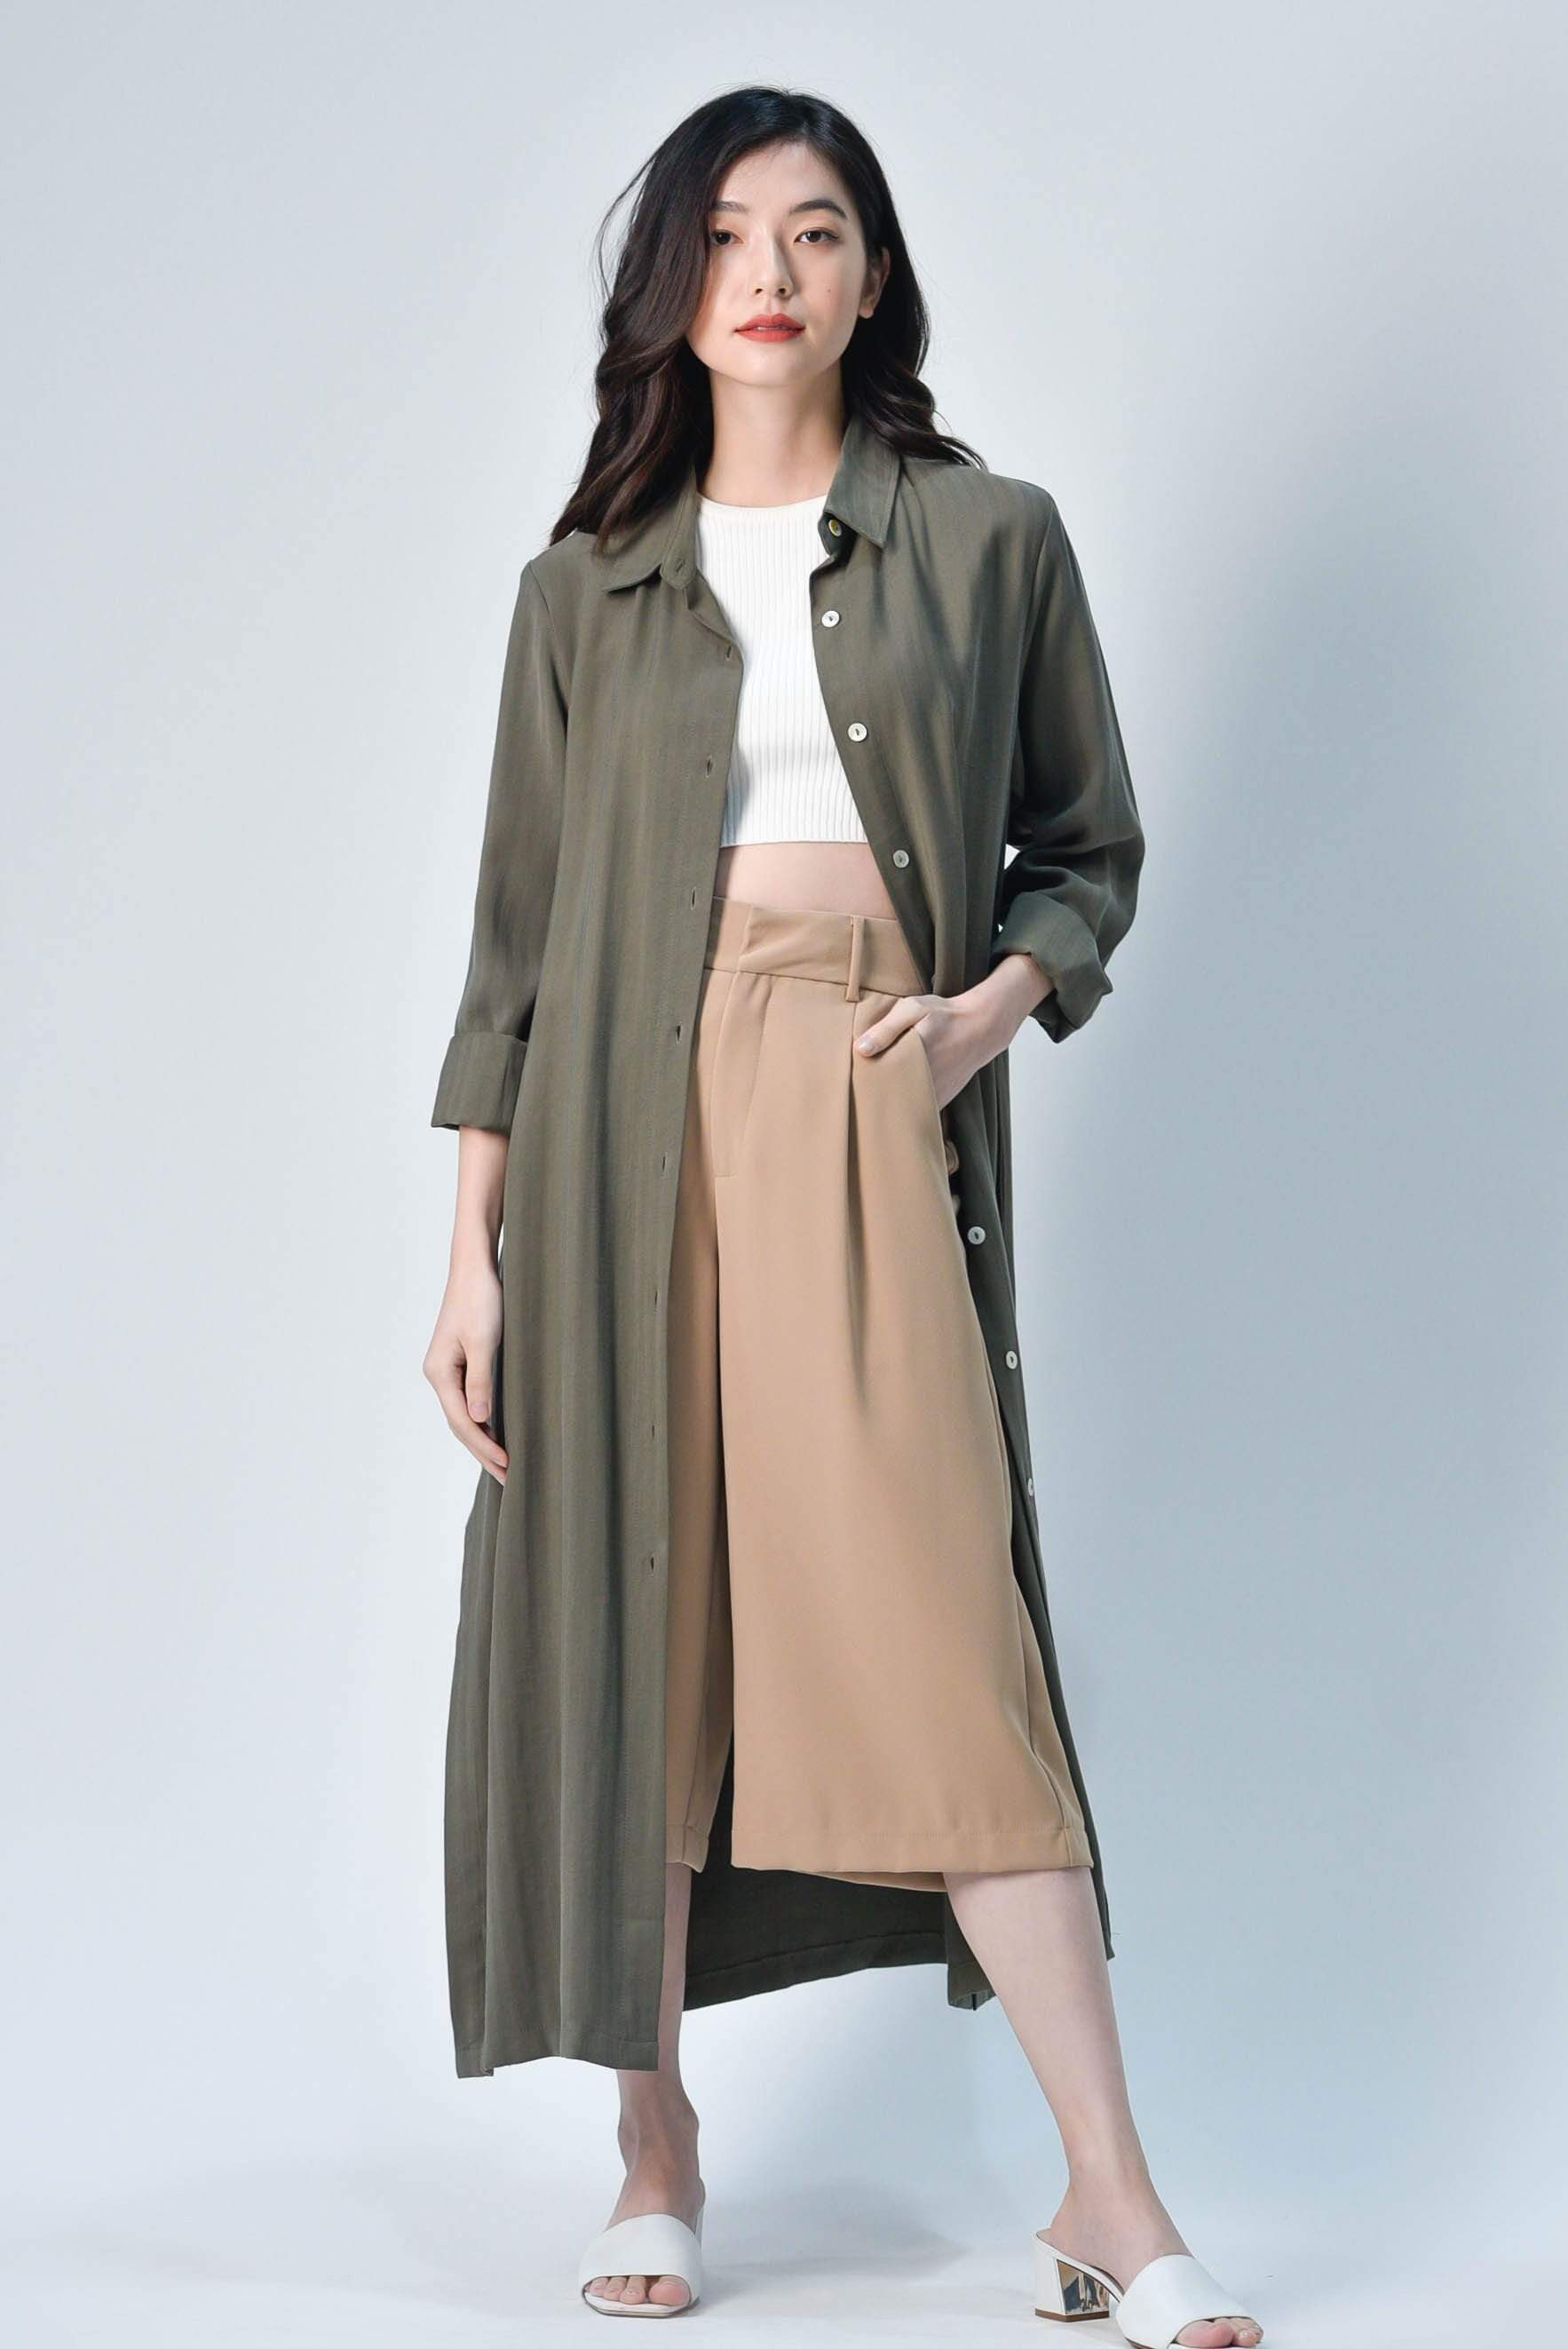 JIHYUN SIDE-SLIT MIDI SHIRTDRESS IN OLIVE